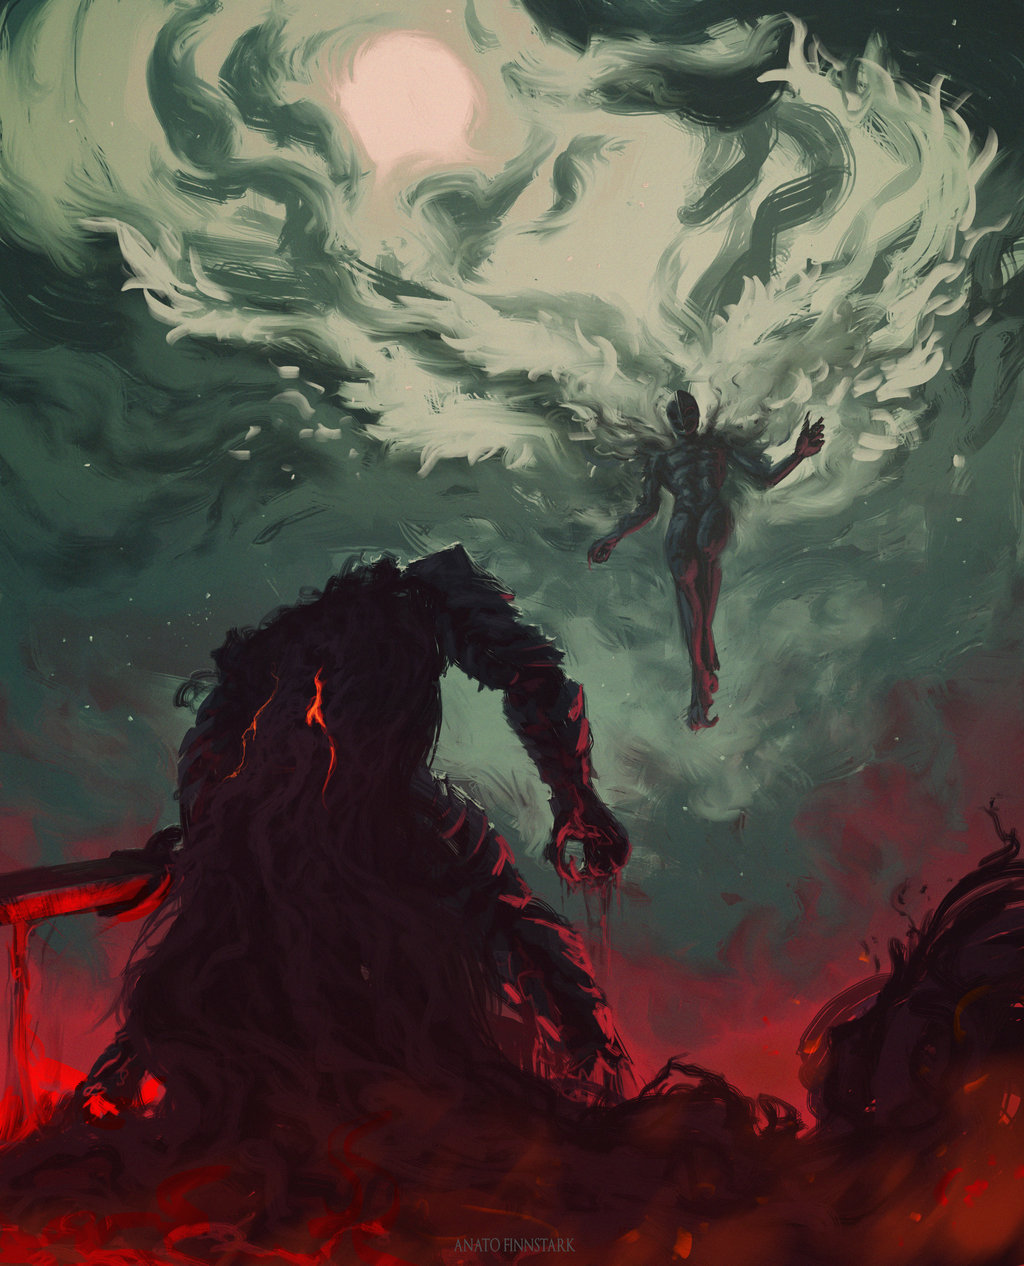 time_to_release_the_beast___berserk___by_anatofinnstark-dcsgiyg